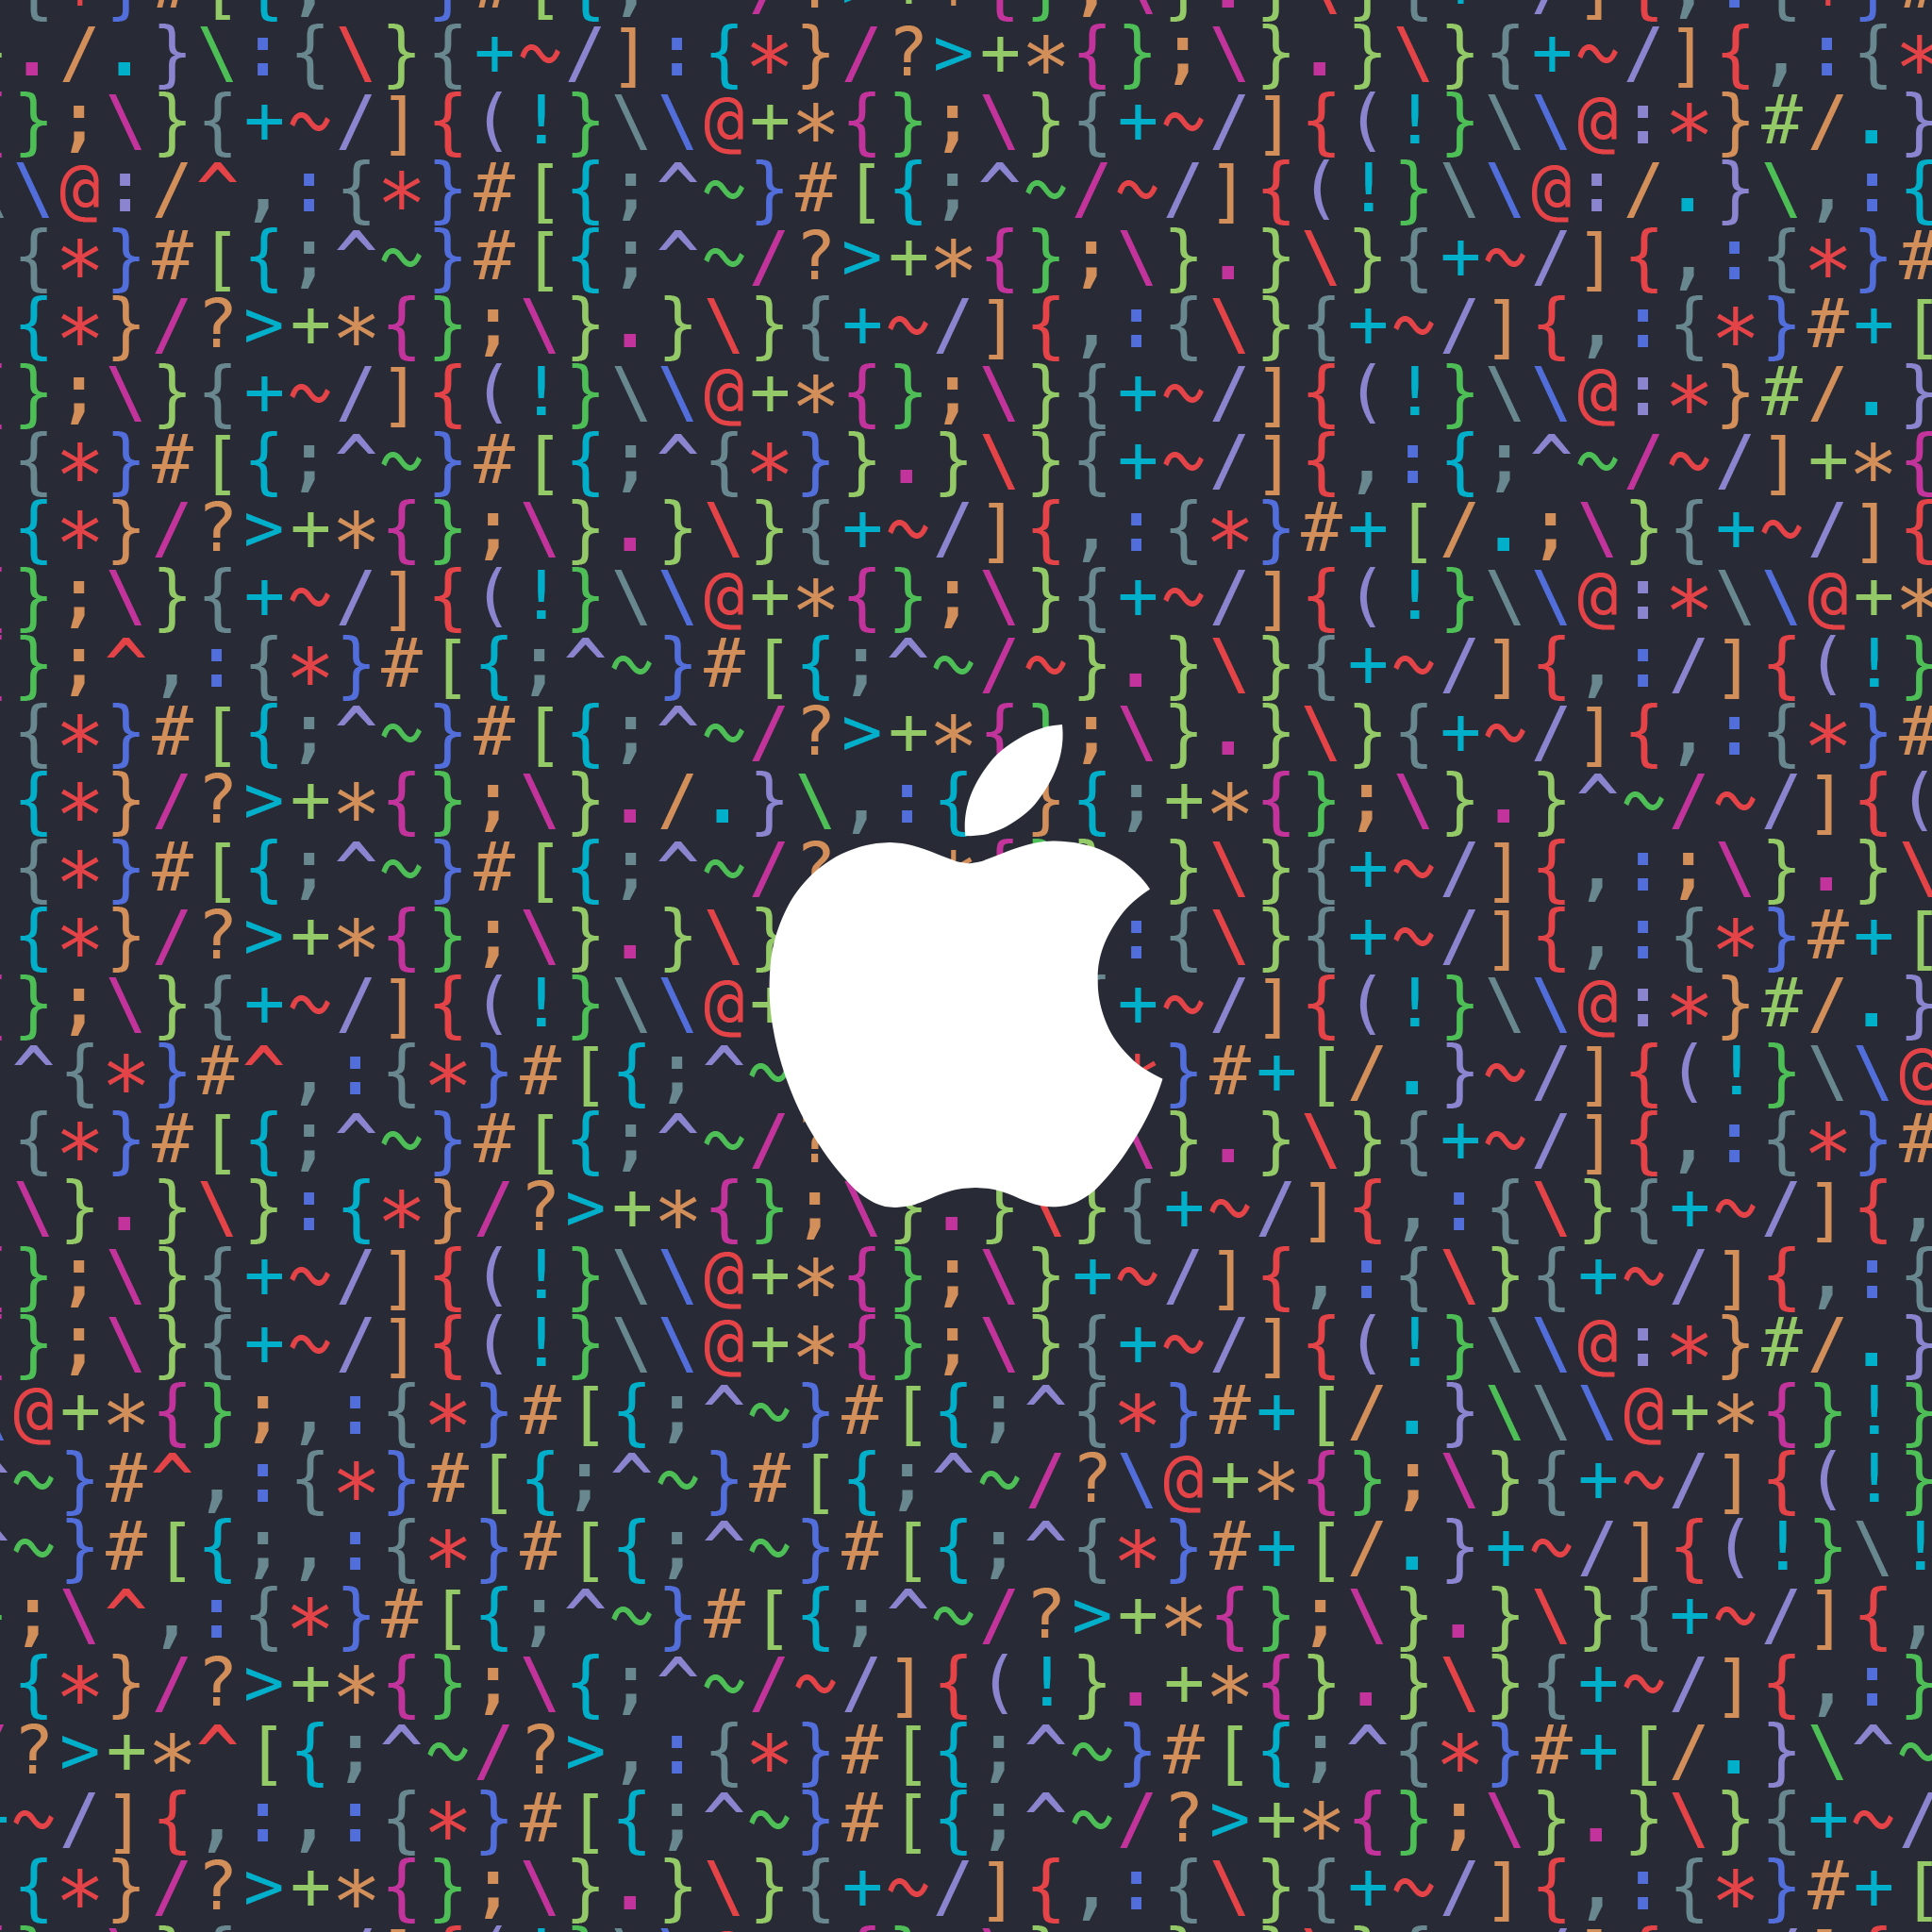 a78c43386fc Nuevos Wallpapers de la WWDC para iPhone, iPad, Watch y Mac